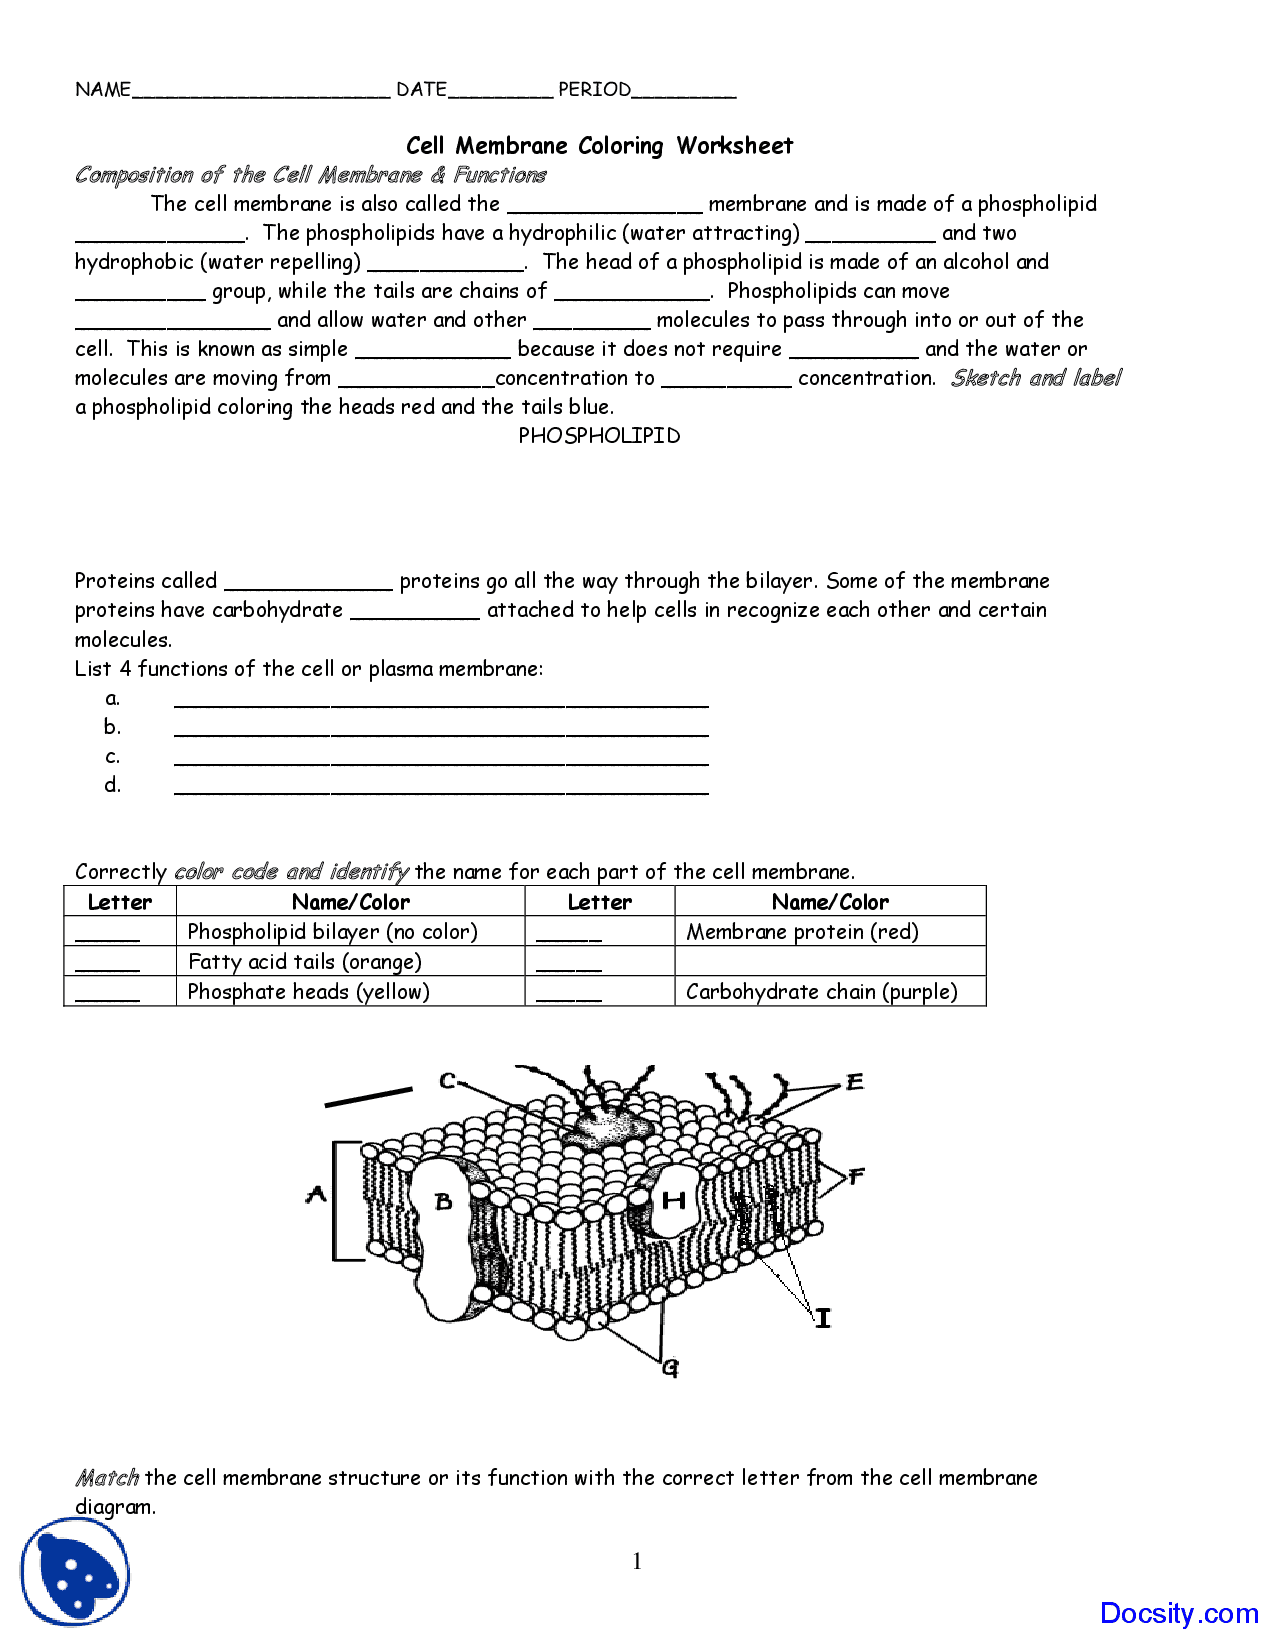 Cell Membrane Images Worksheets Answers